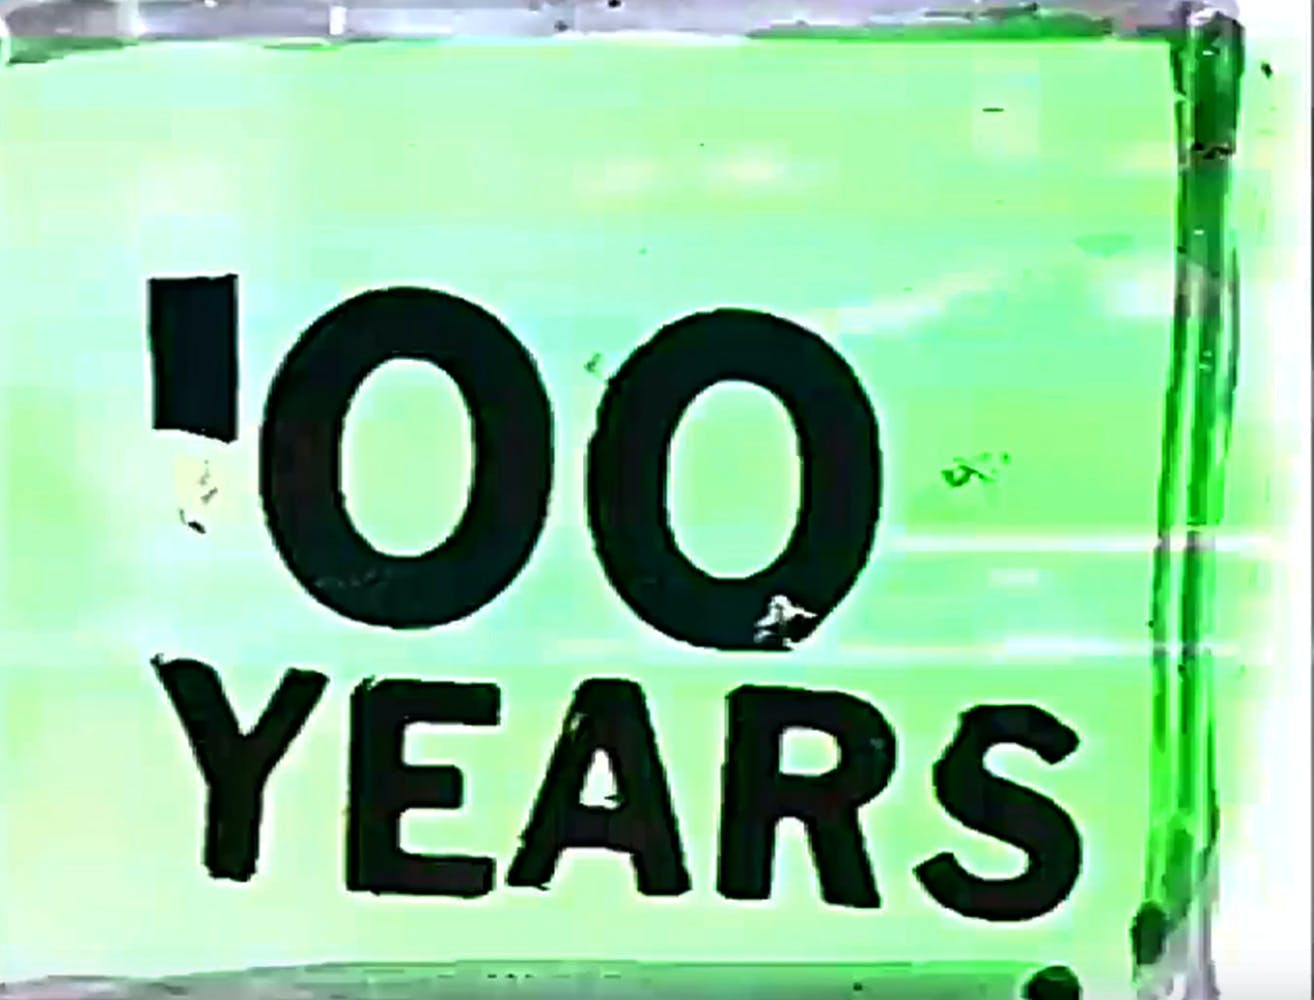 """Green background with large black collaged text that says """"'00 YEARS"""""""